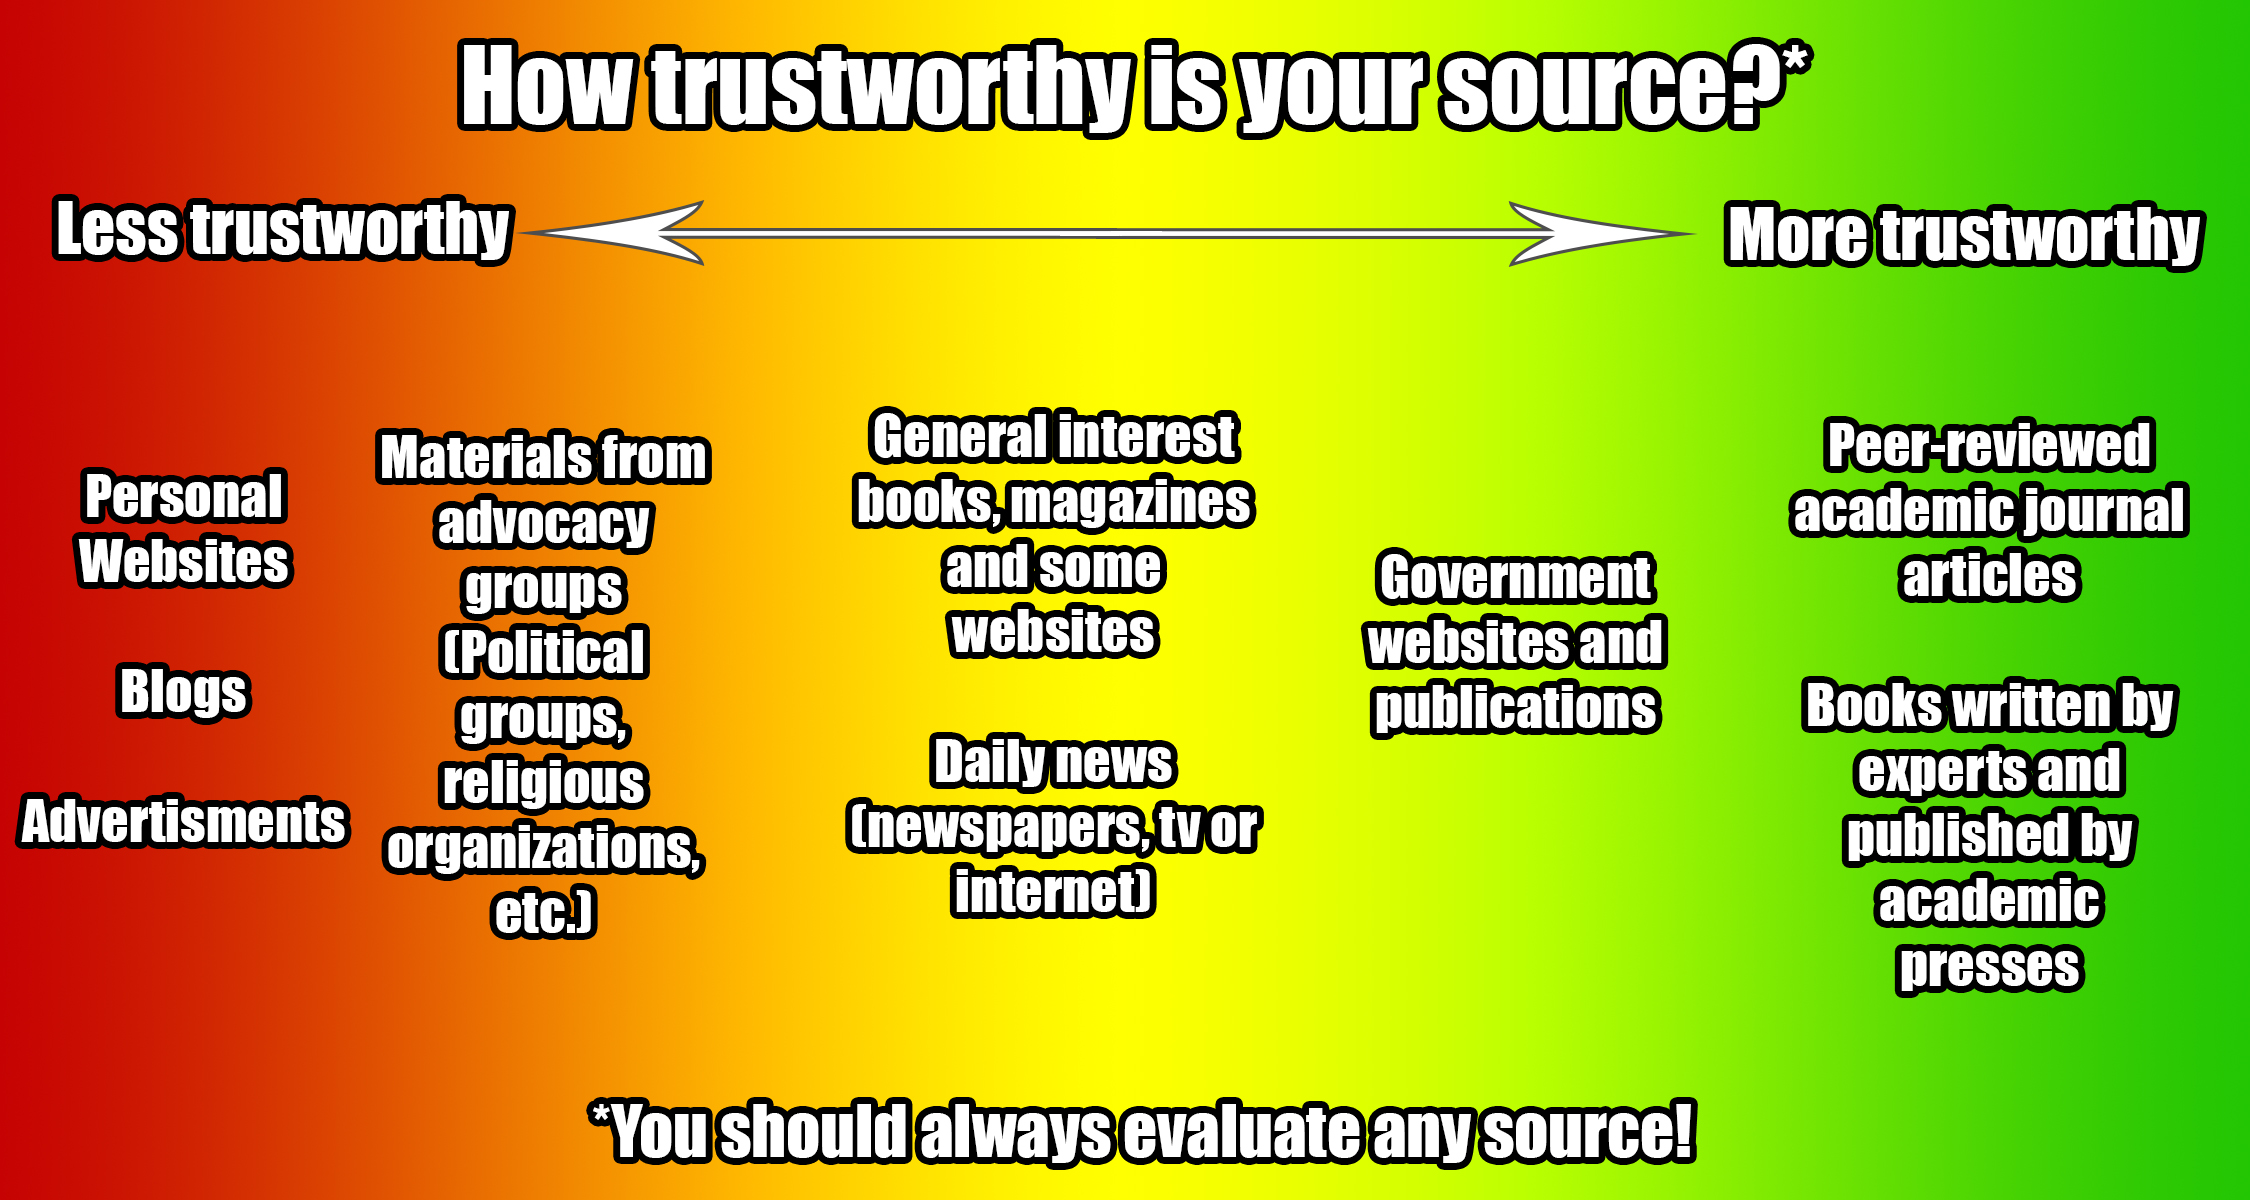 How trustworthy is your source? chart